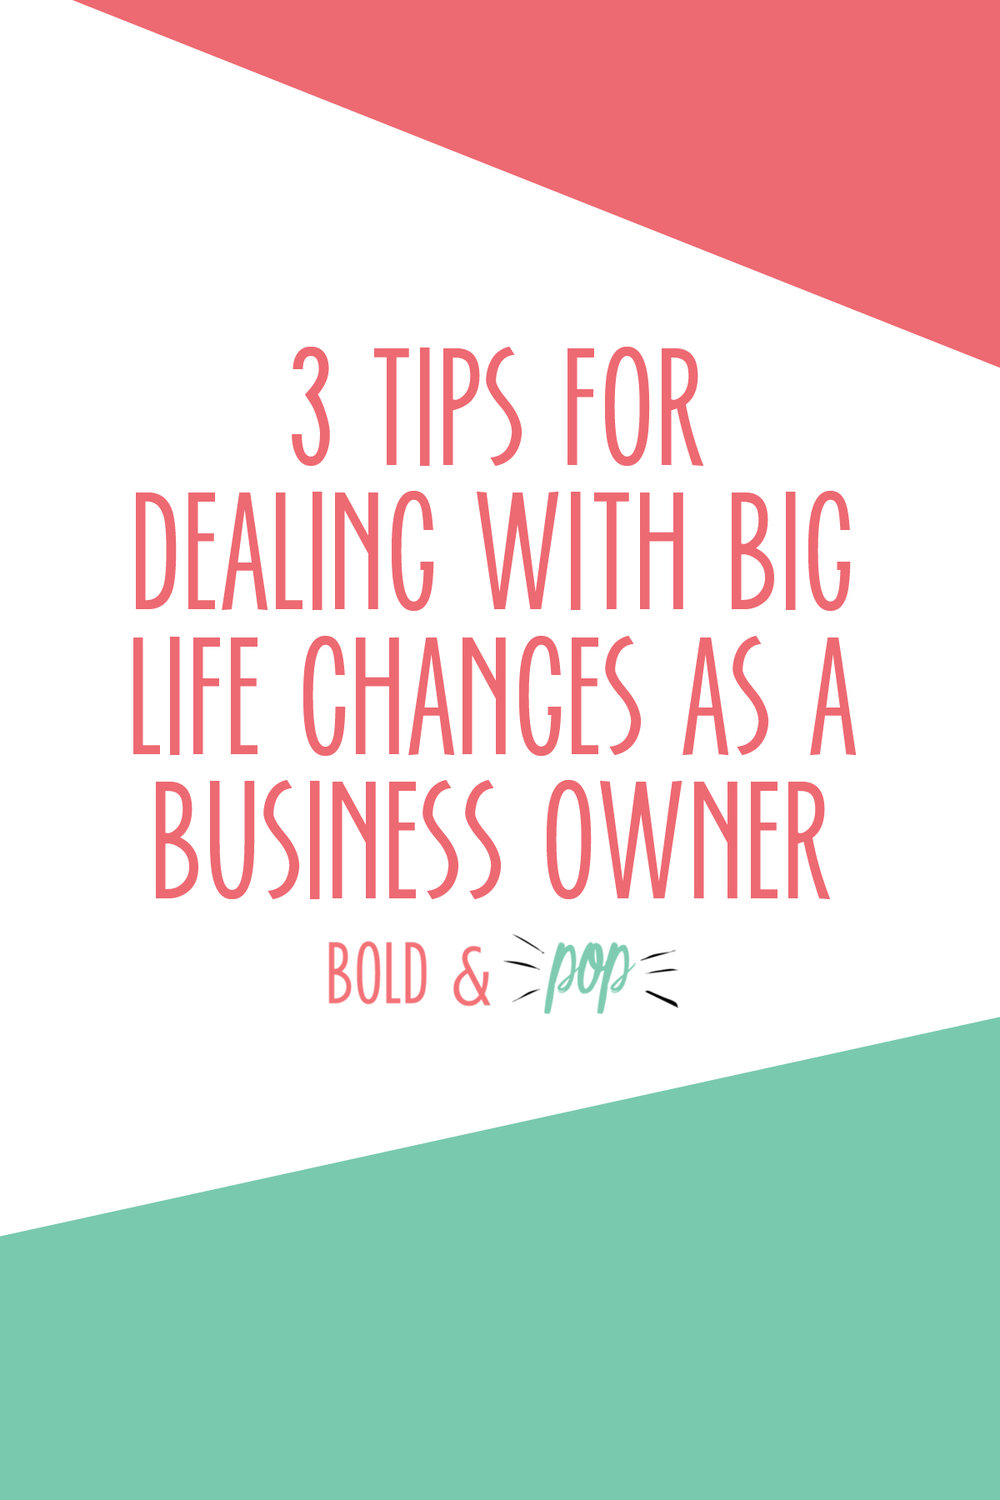 Bold & Pop : 3 Tips for Dealing with BIG Life Changes as a Business Owner